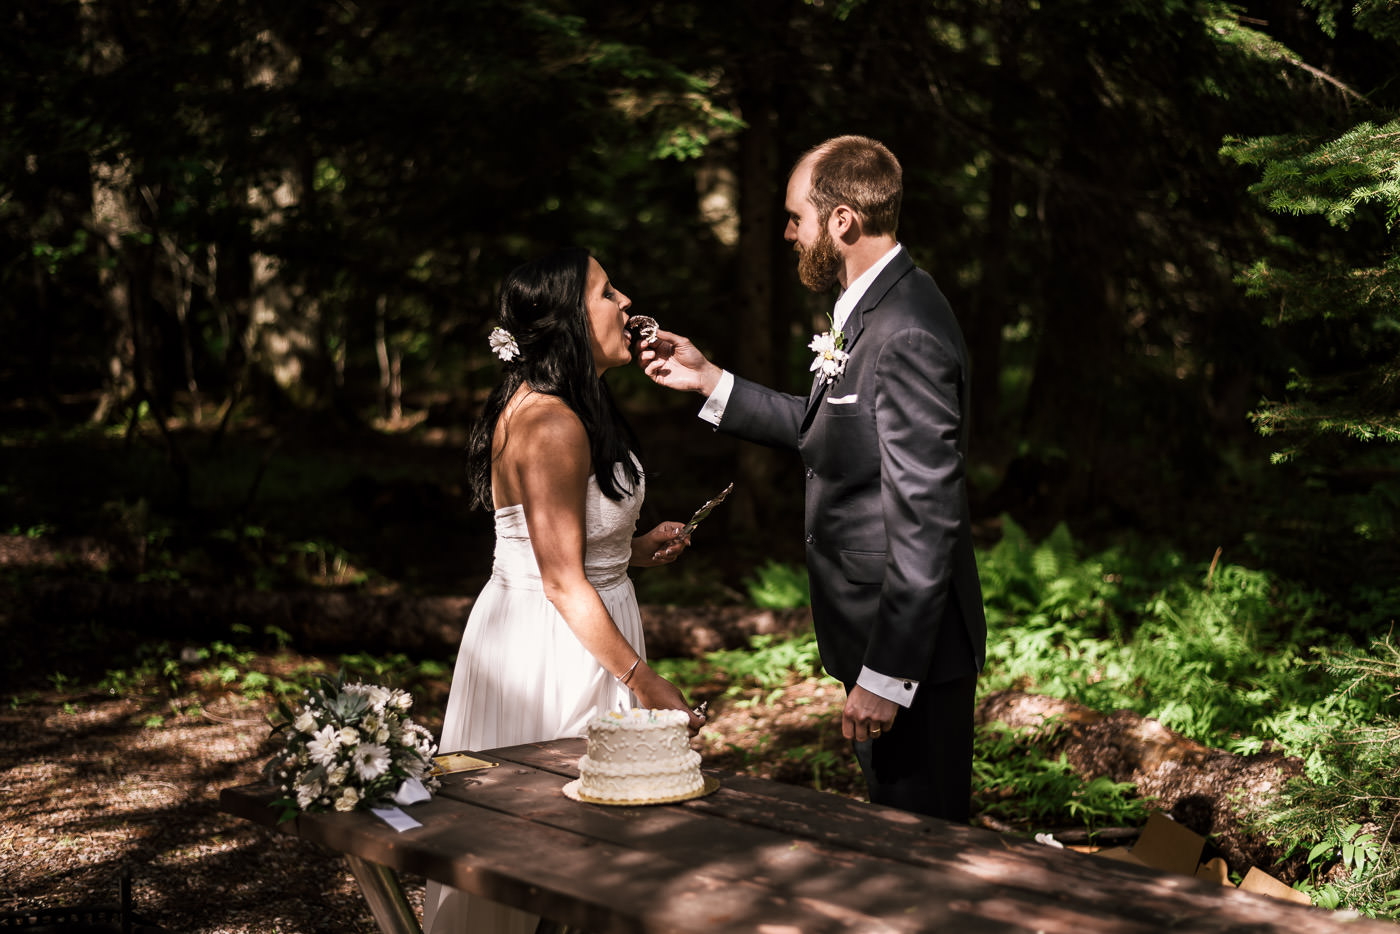 Husband feeds his new wife a piece of cake at their Montana wedding.